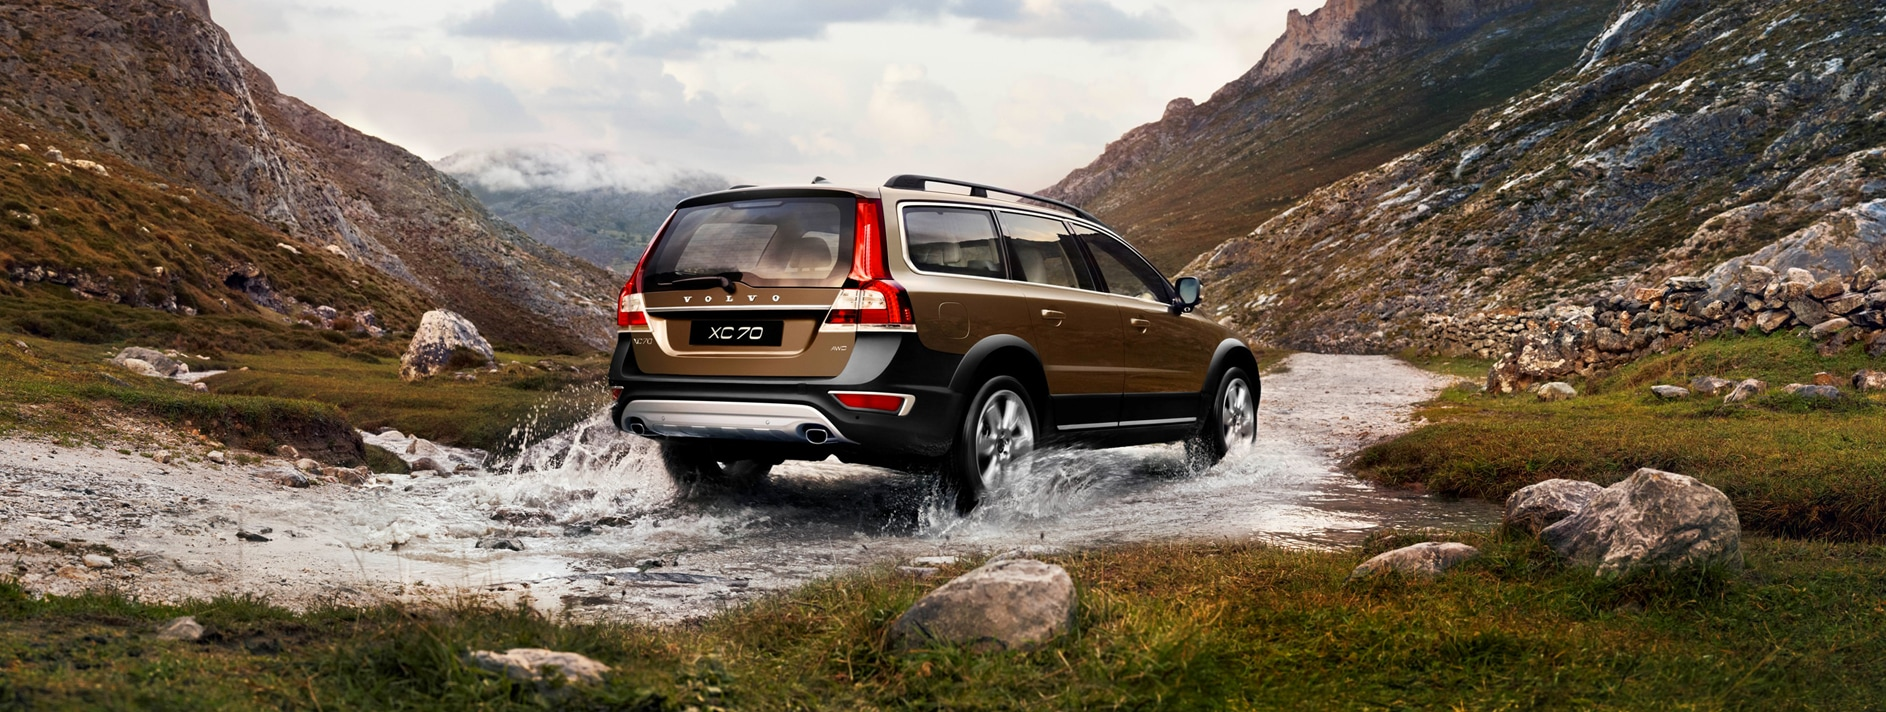 2017 Volvo XC70 - On Road Capability, Off Road Potential